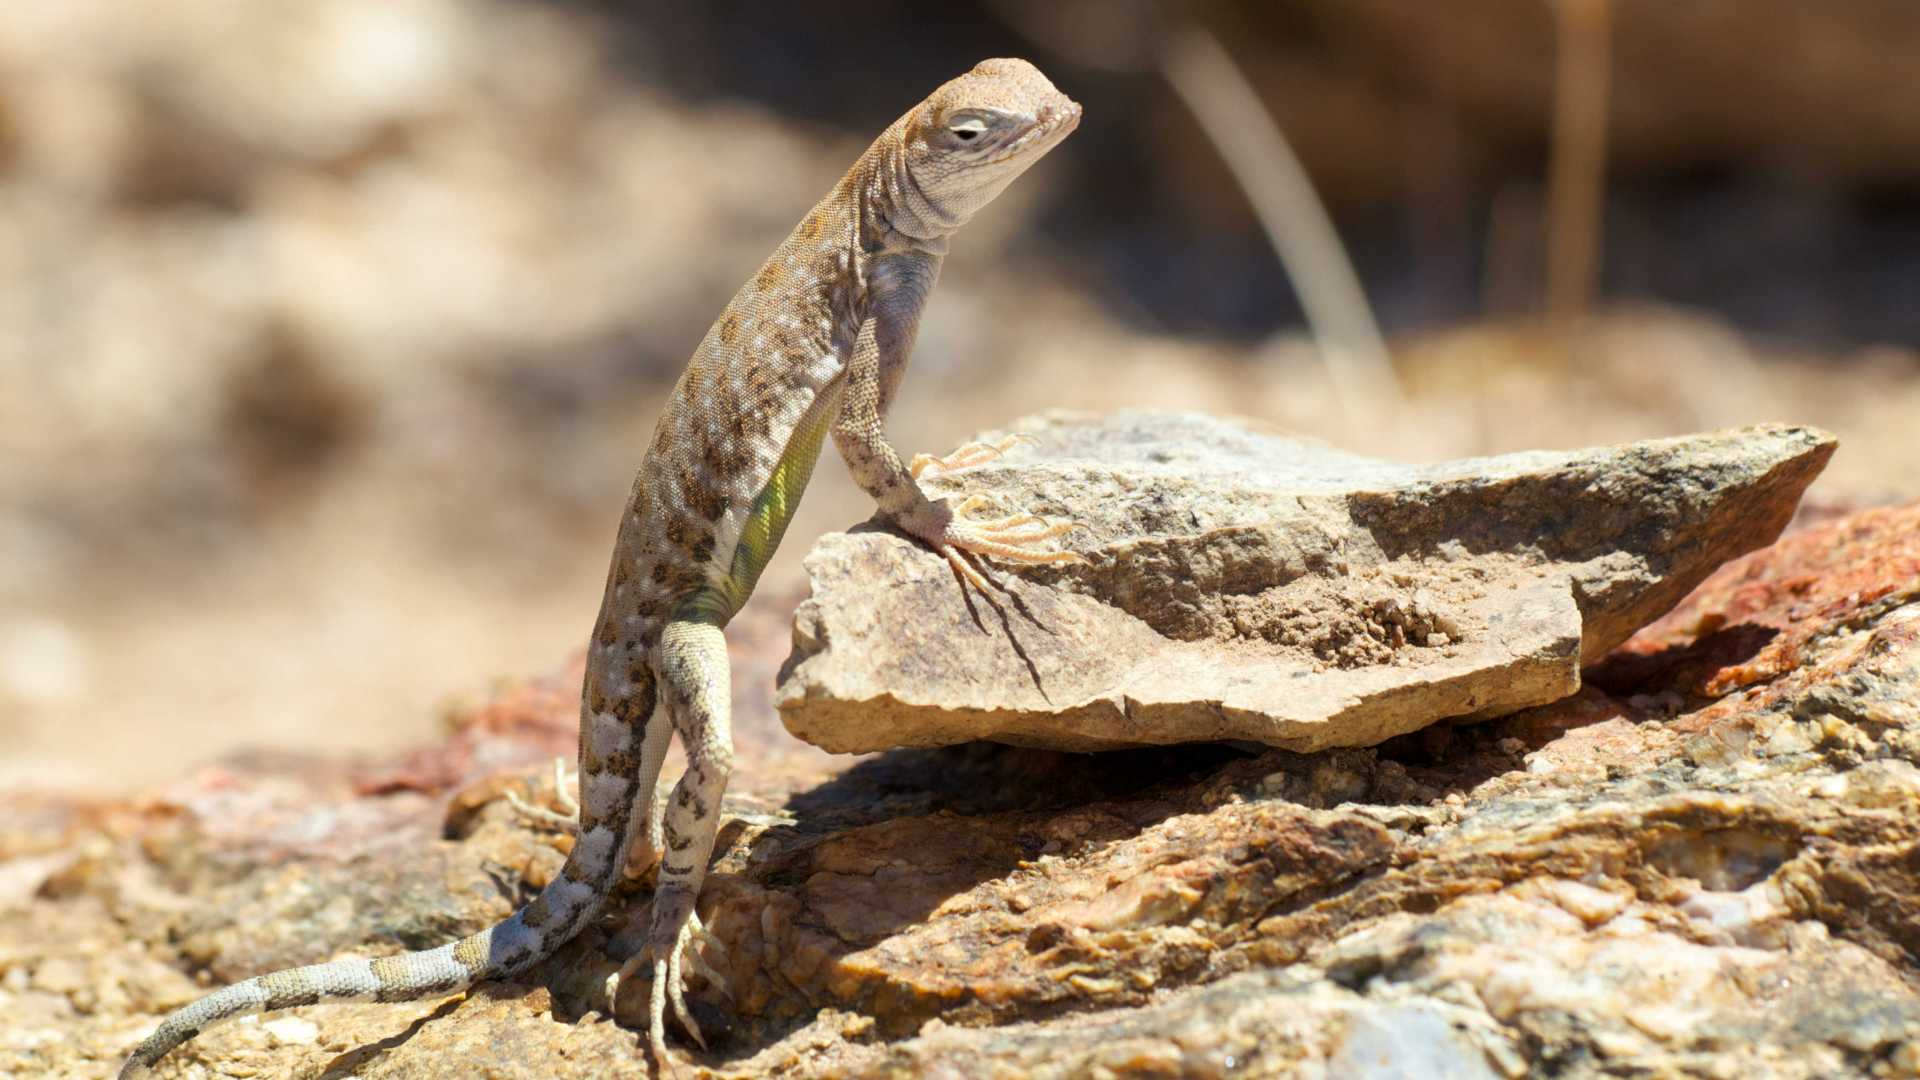 Lizard in Sonoran Desert